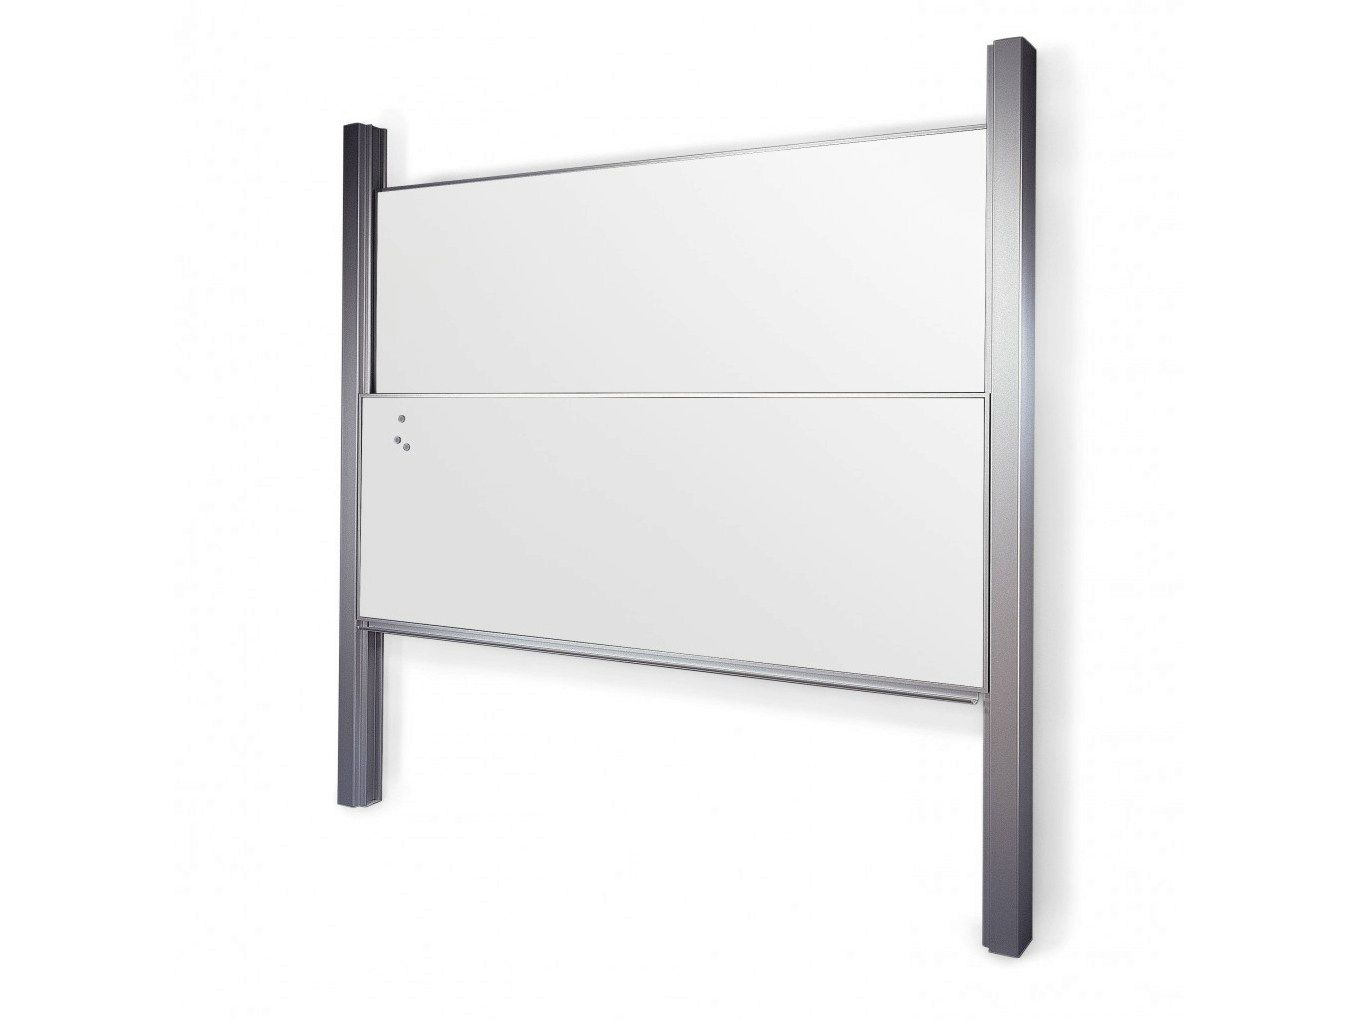 Vertically Sliding Whiteboard Put Over The 1 Way Mirrors